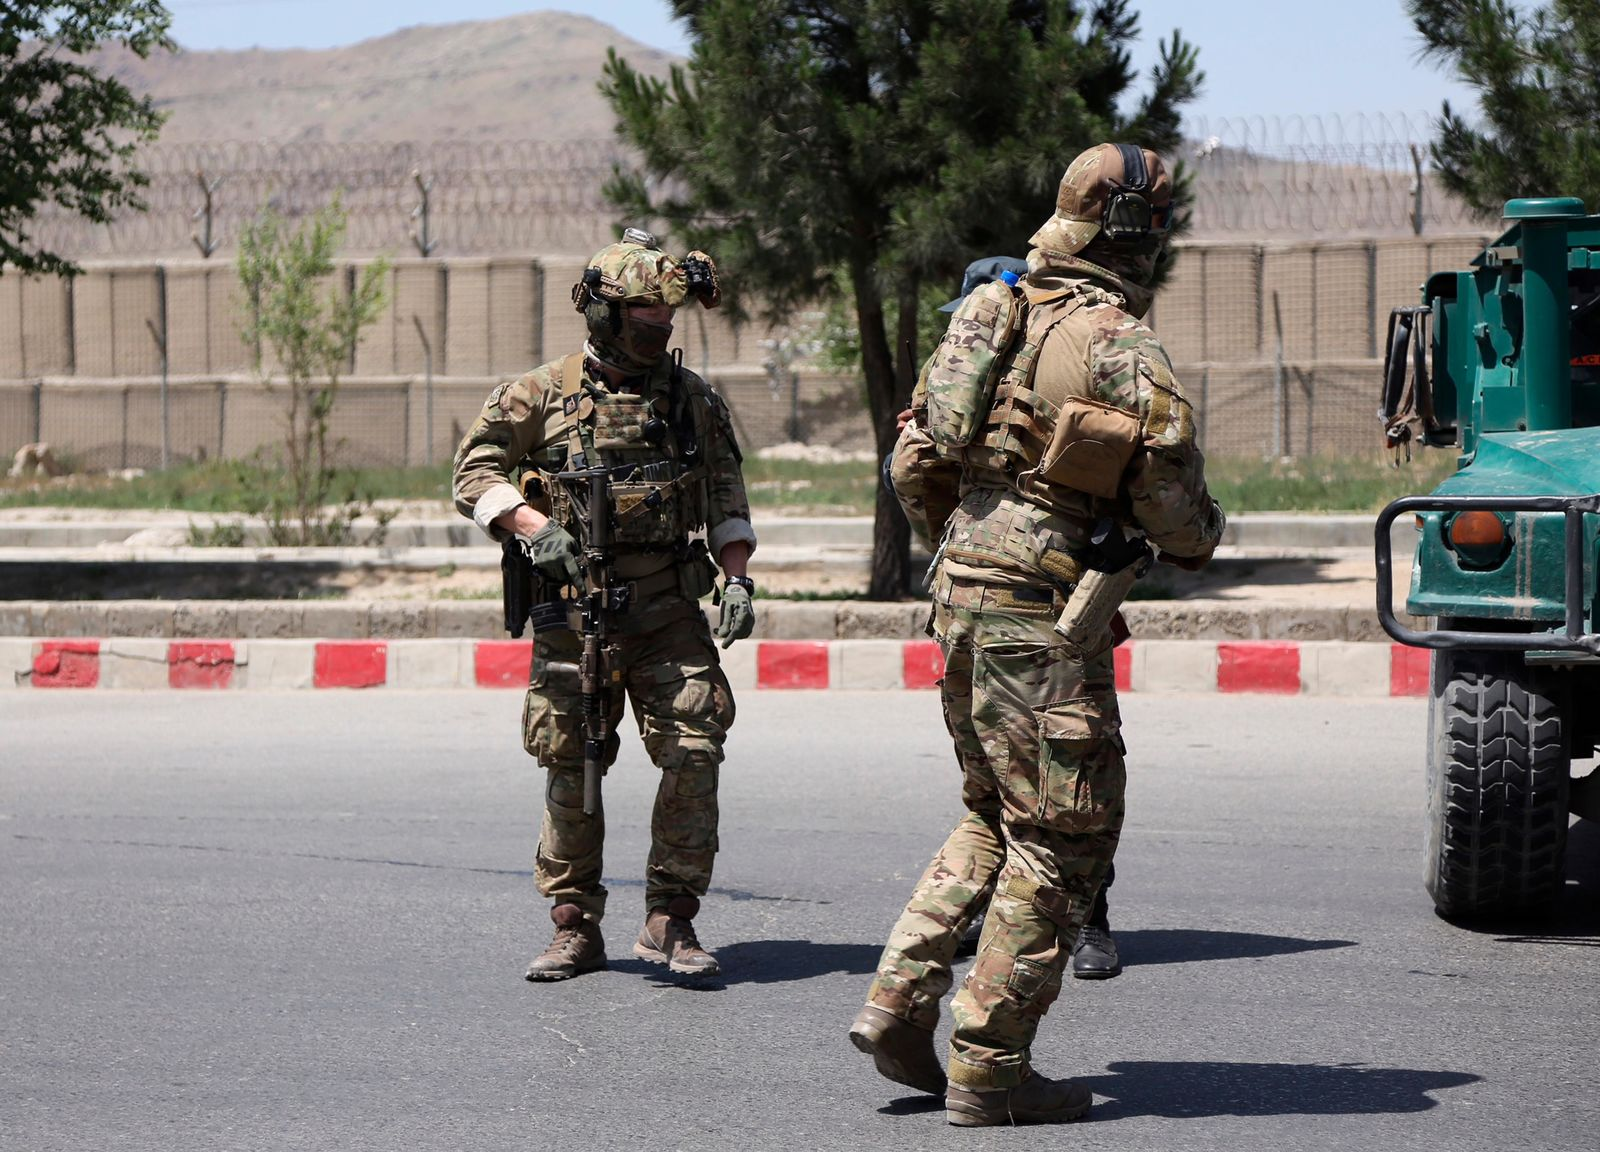 Security personnel arrive at the site of an attack in the Afghan Interior Ministry in Kabul, Afghanistan, Wednesday, May 30, 2018. (AP Photo/Rahmat Gul)